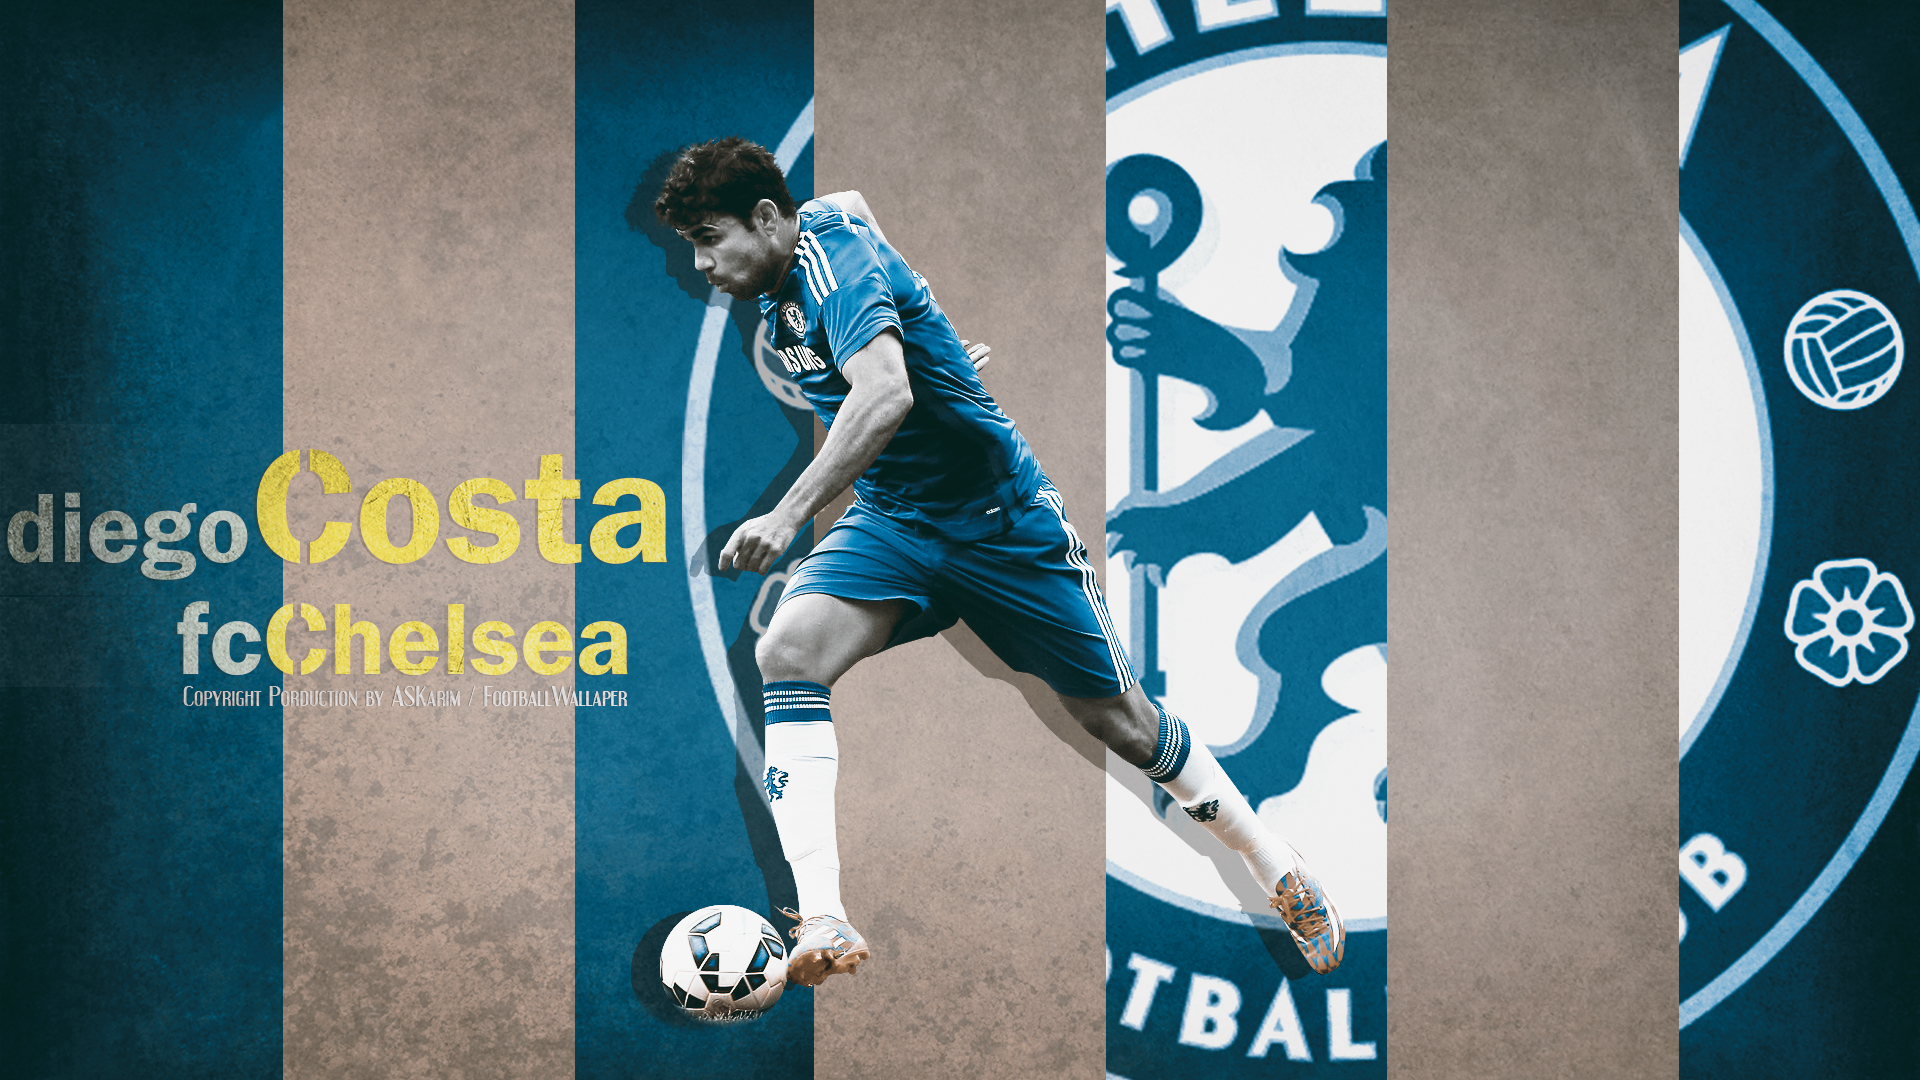 Free Download Diego Costa Wallpaper Fc Chelsea 20142015 By